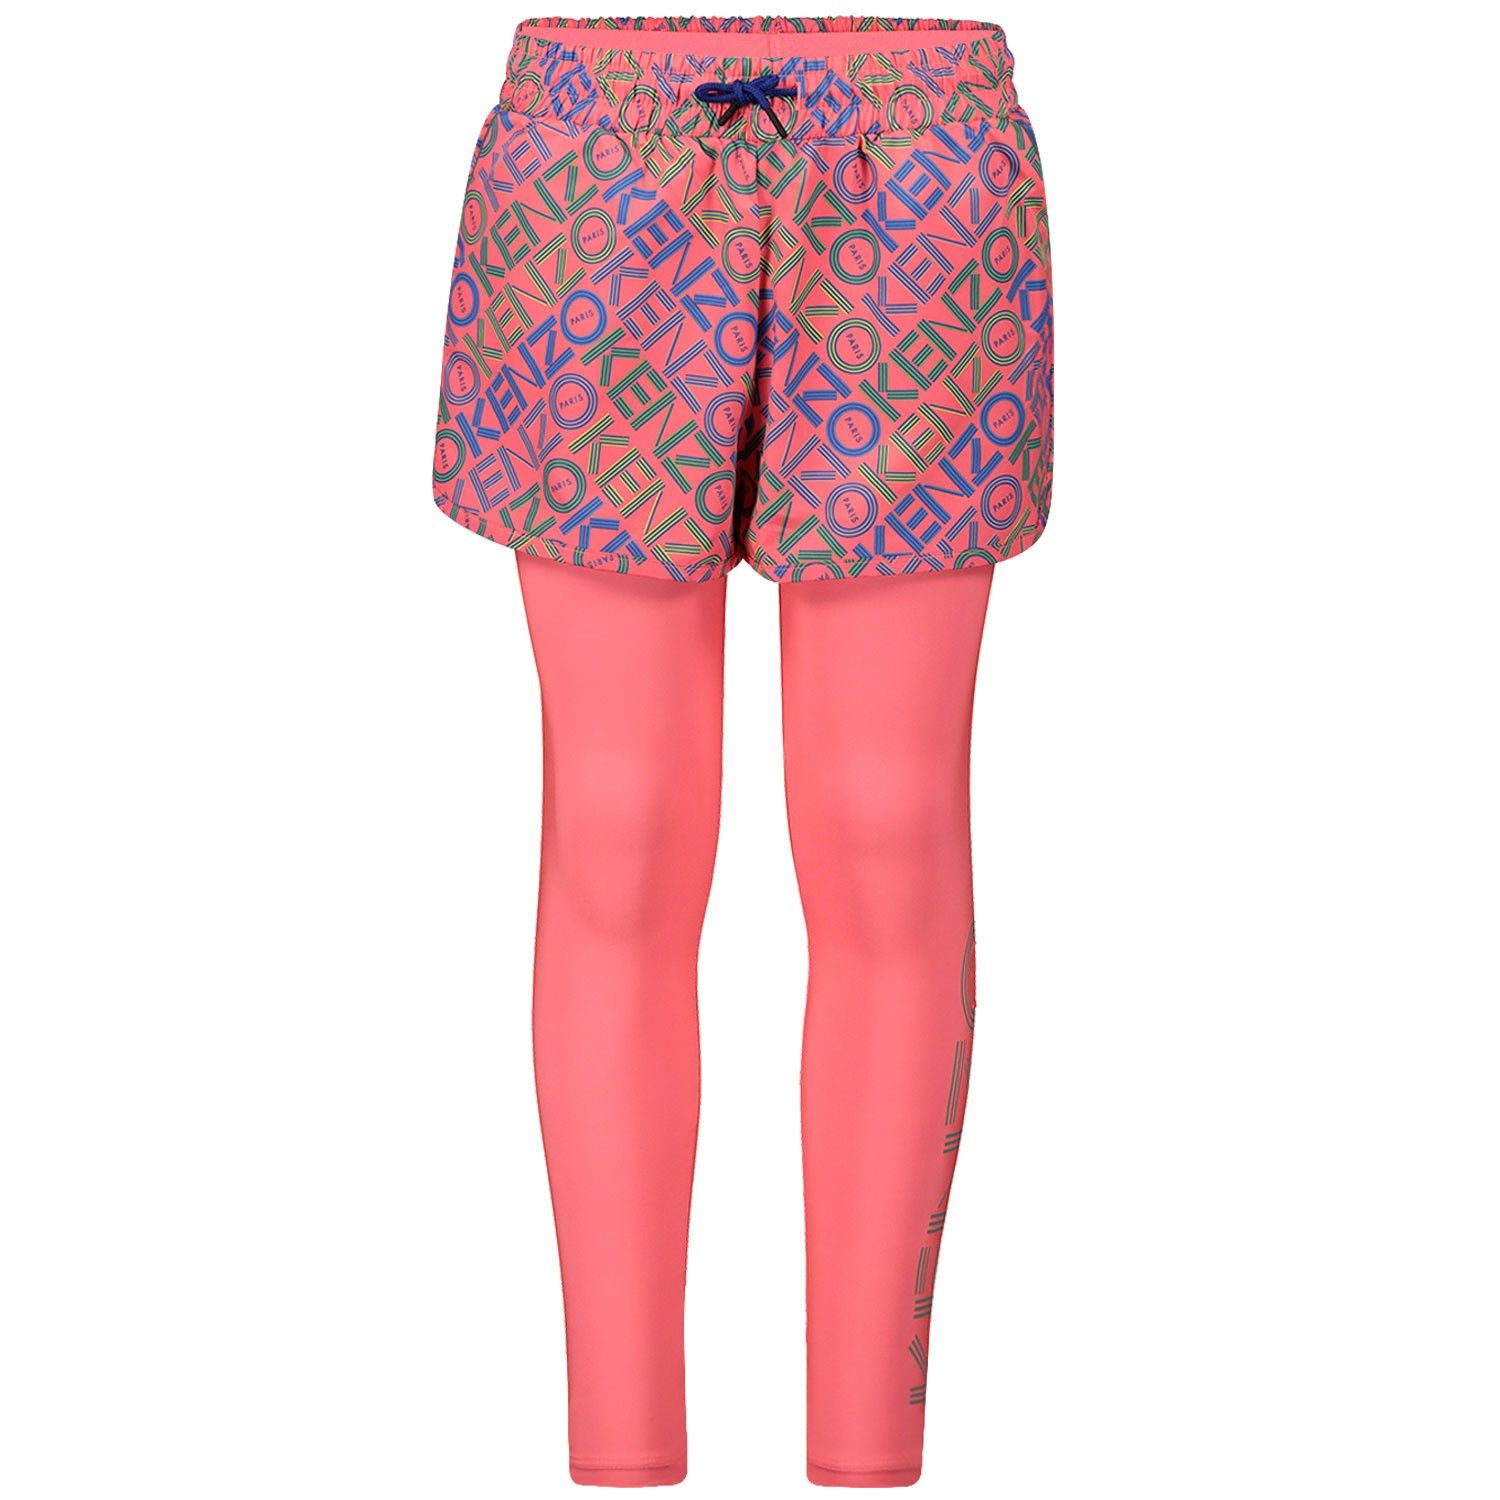 Picture of Kenzo KP24088 kids tights fluoro pink